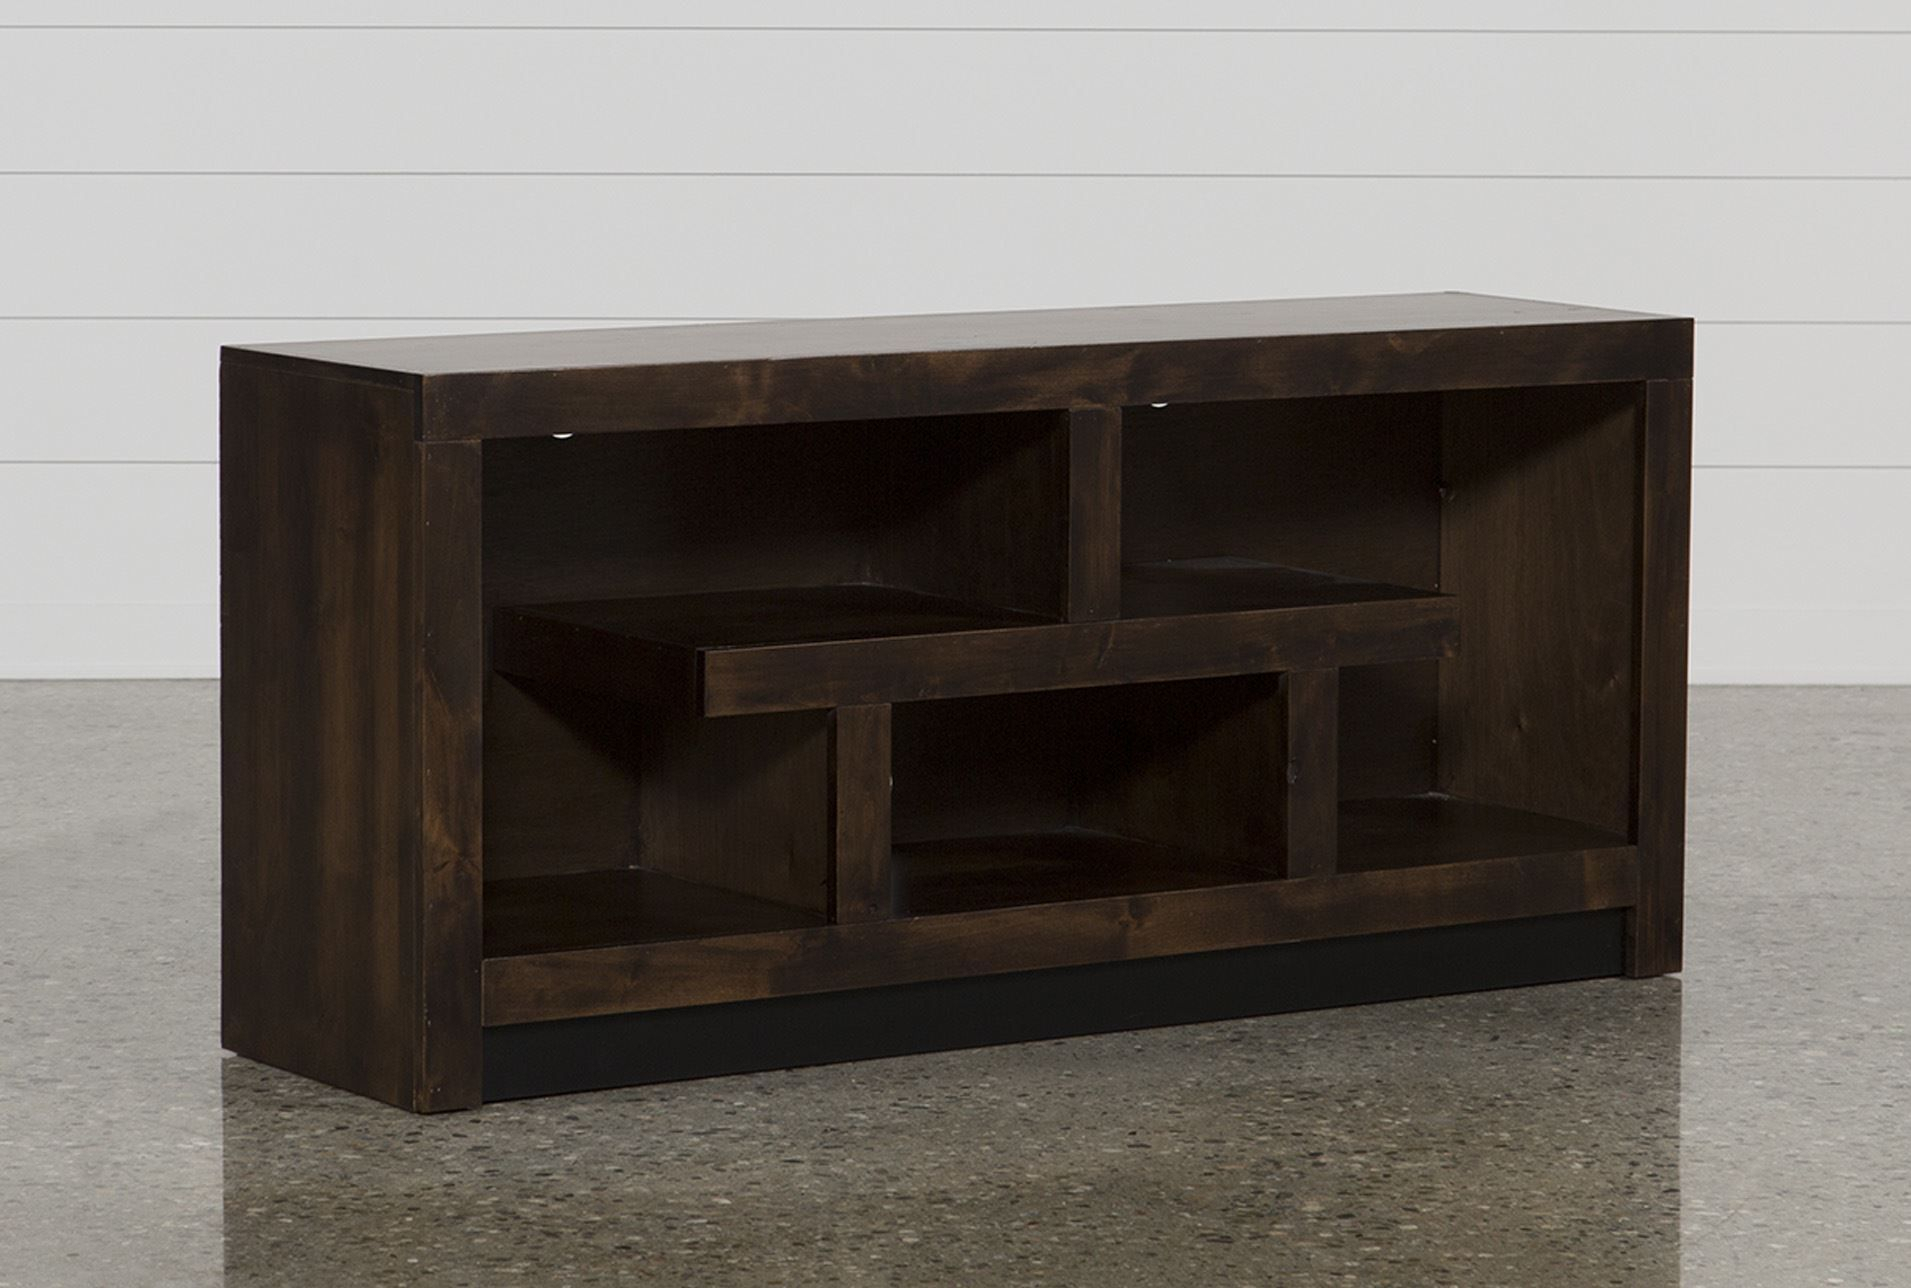 Walton 60 Inch Tv Stand | My Space  | Pinterest | 60 Inch Tvs Pertaining To Bale Rustic Grey 82 Inch Tv Stands (Photo 5 of 30)